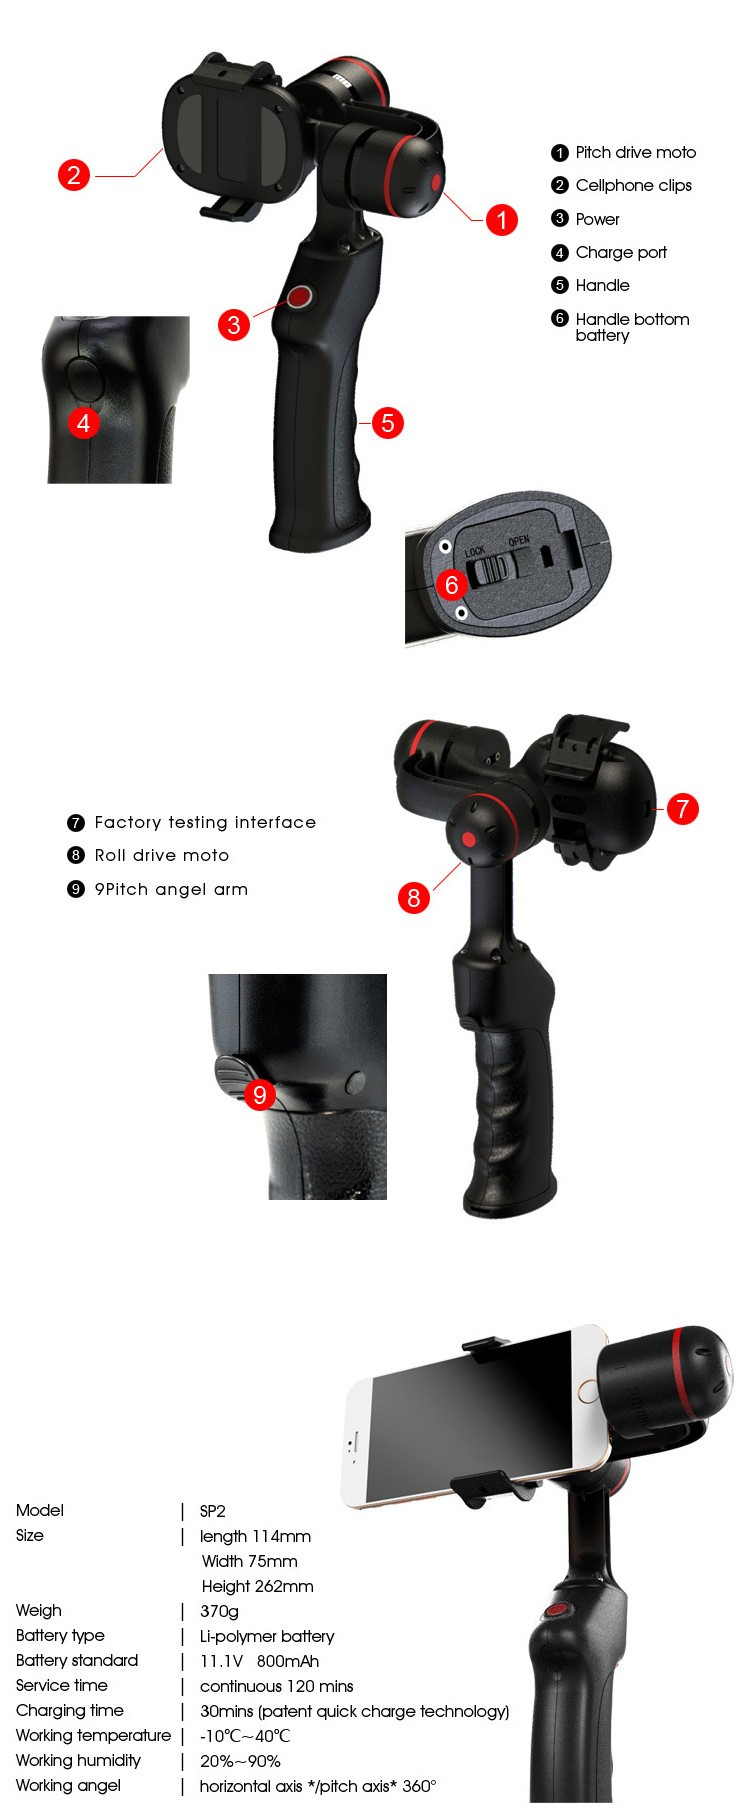 Wenpod SP1+ Smartphone Gimbal Stabilizer Handheld Gimbal 360 Degree for Brand Smartphone